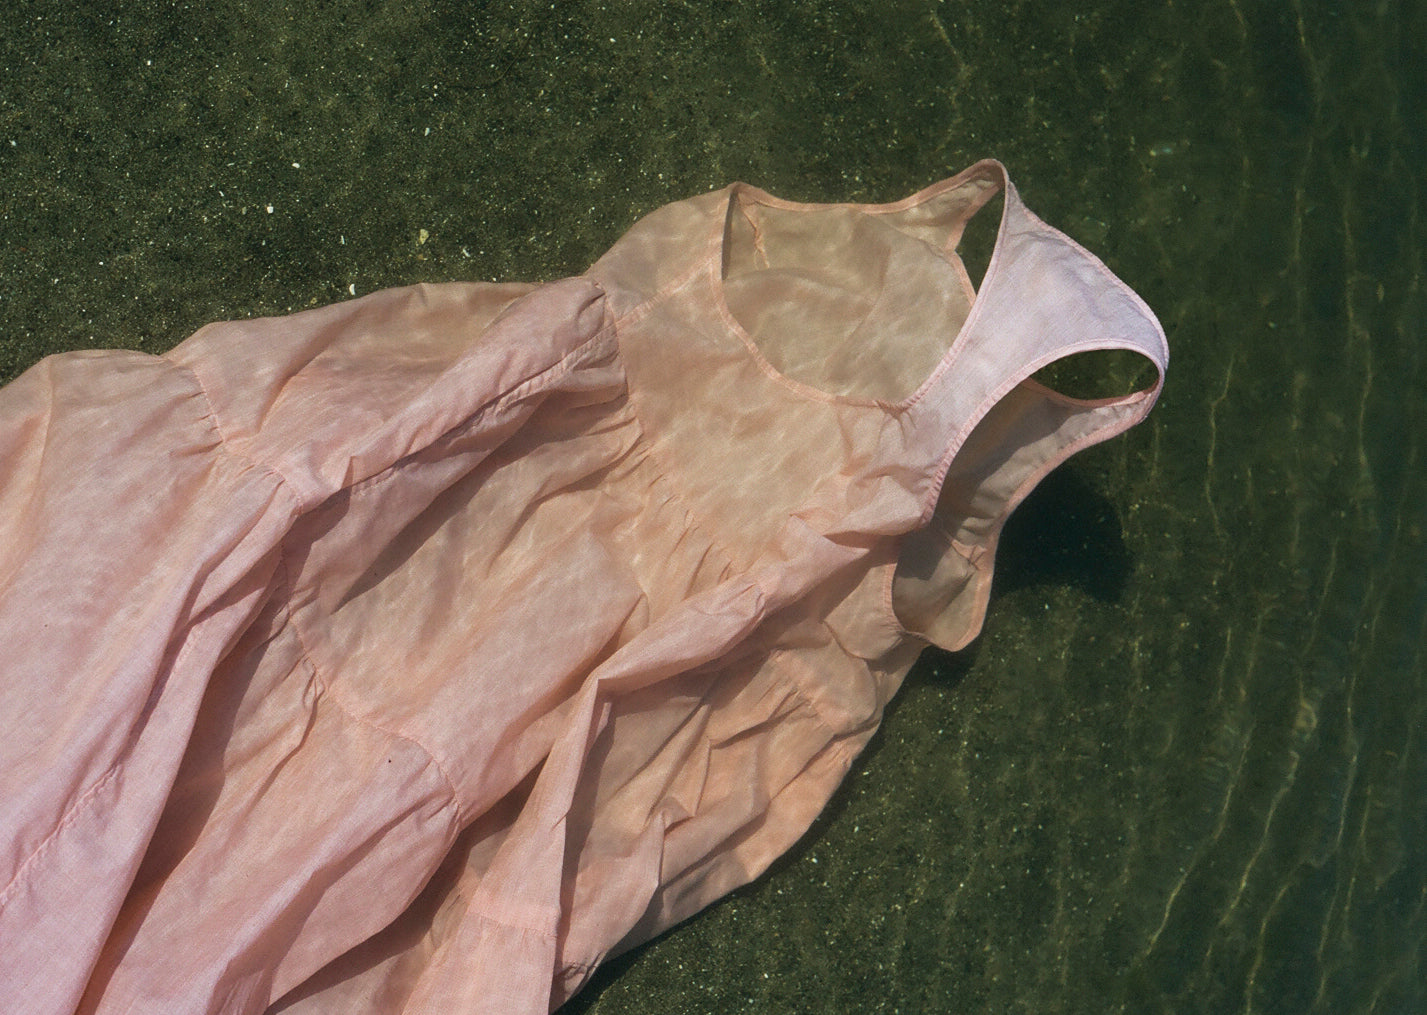 Pale pink racerback ankle length tiered dress or nightdress floating underwater. The sand is green with flecks of metallic, you can see the waves and current in the sunlight. The dress is billowing in the movement of the waves.